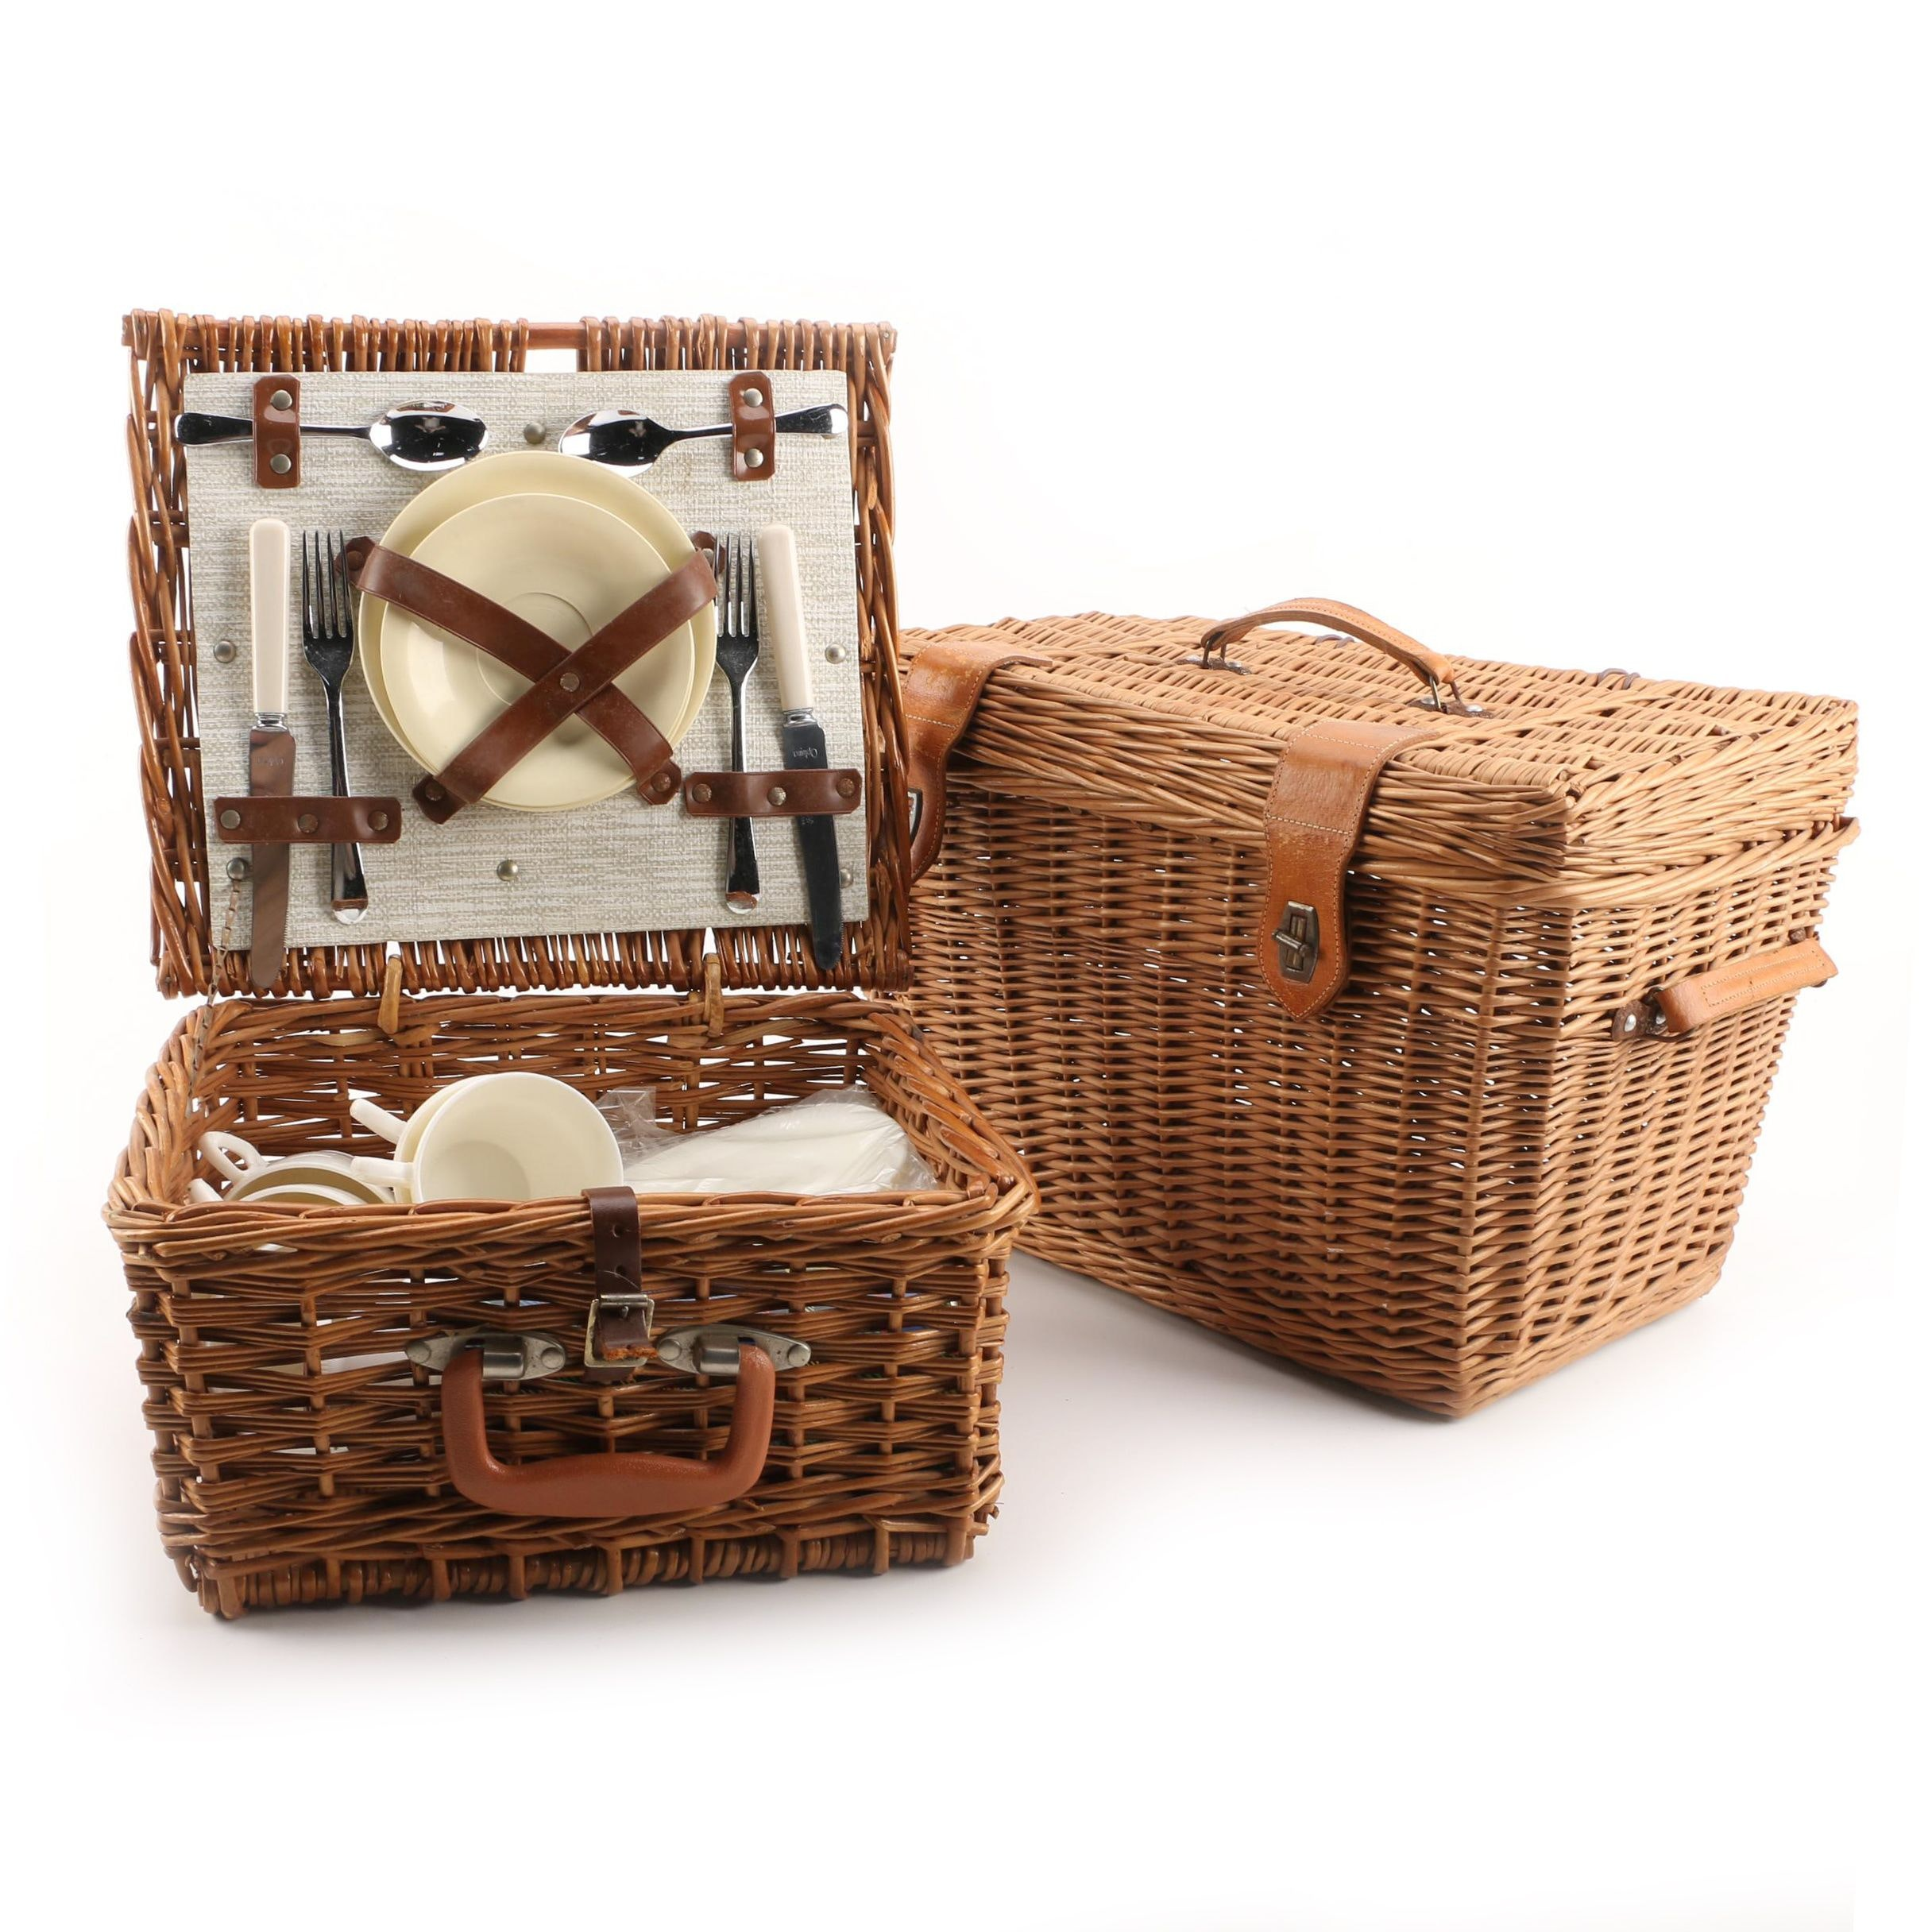 Vintage Woven Picnic Baskets and Picnic Serveware